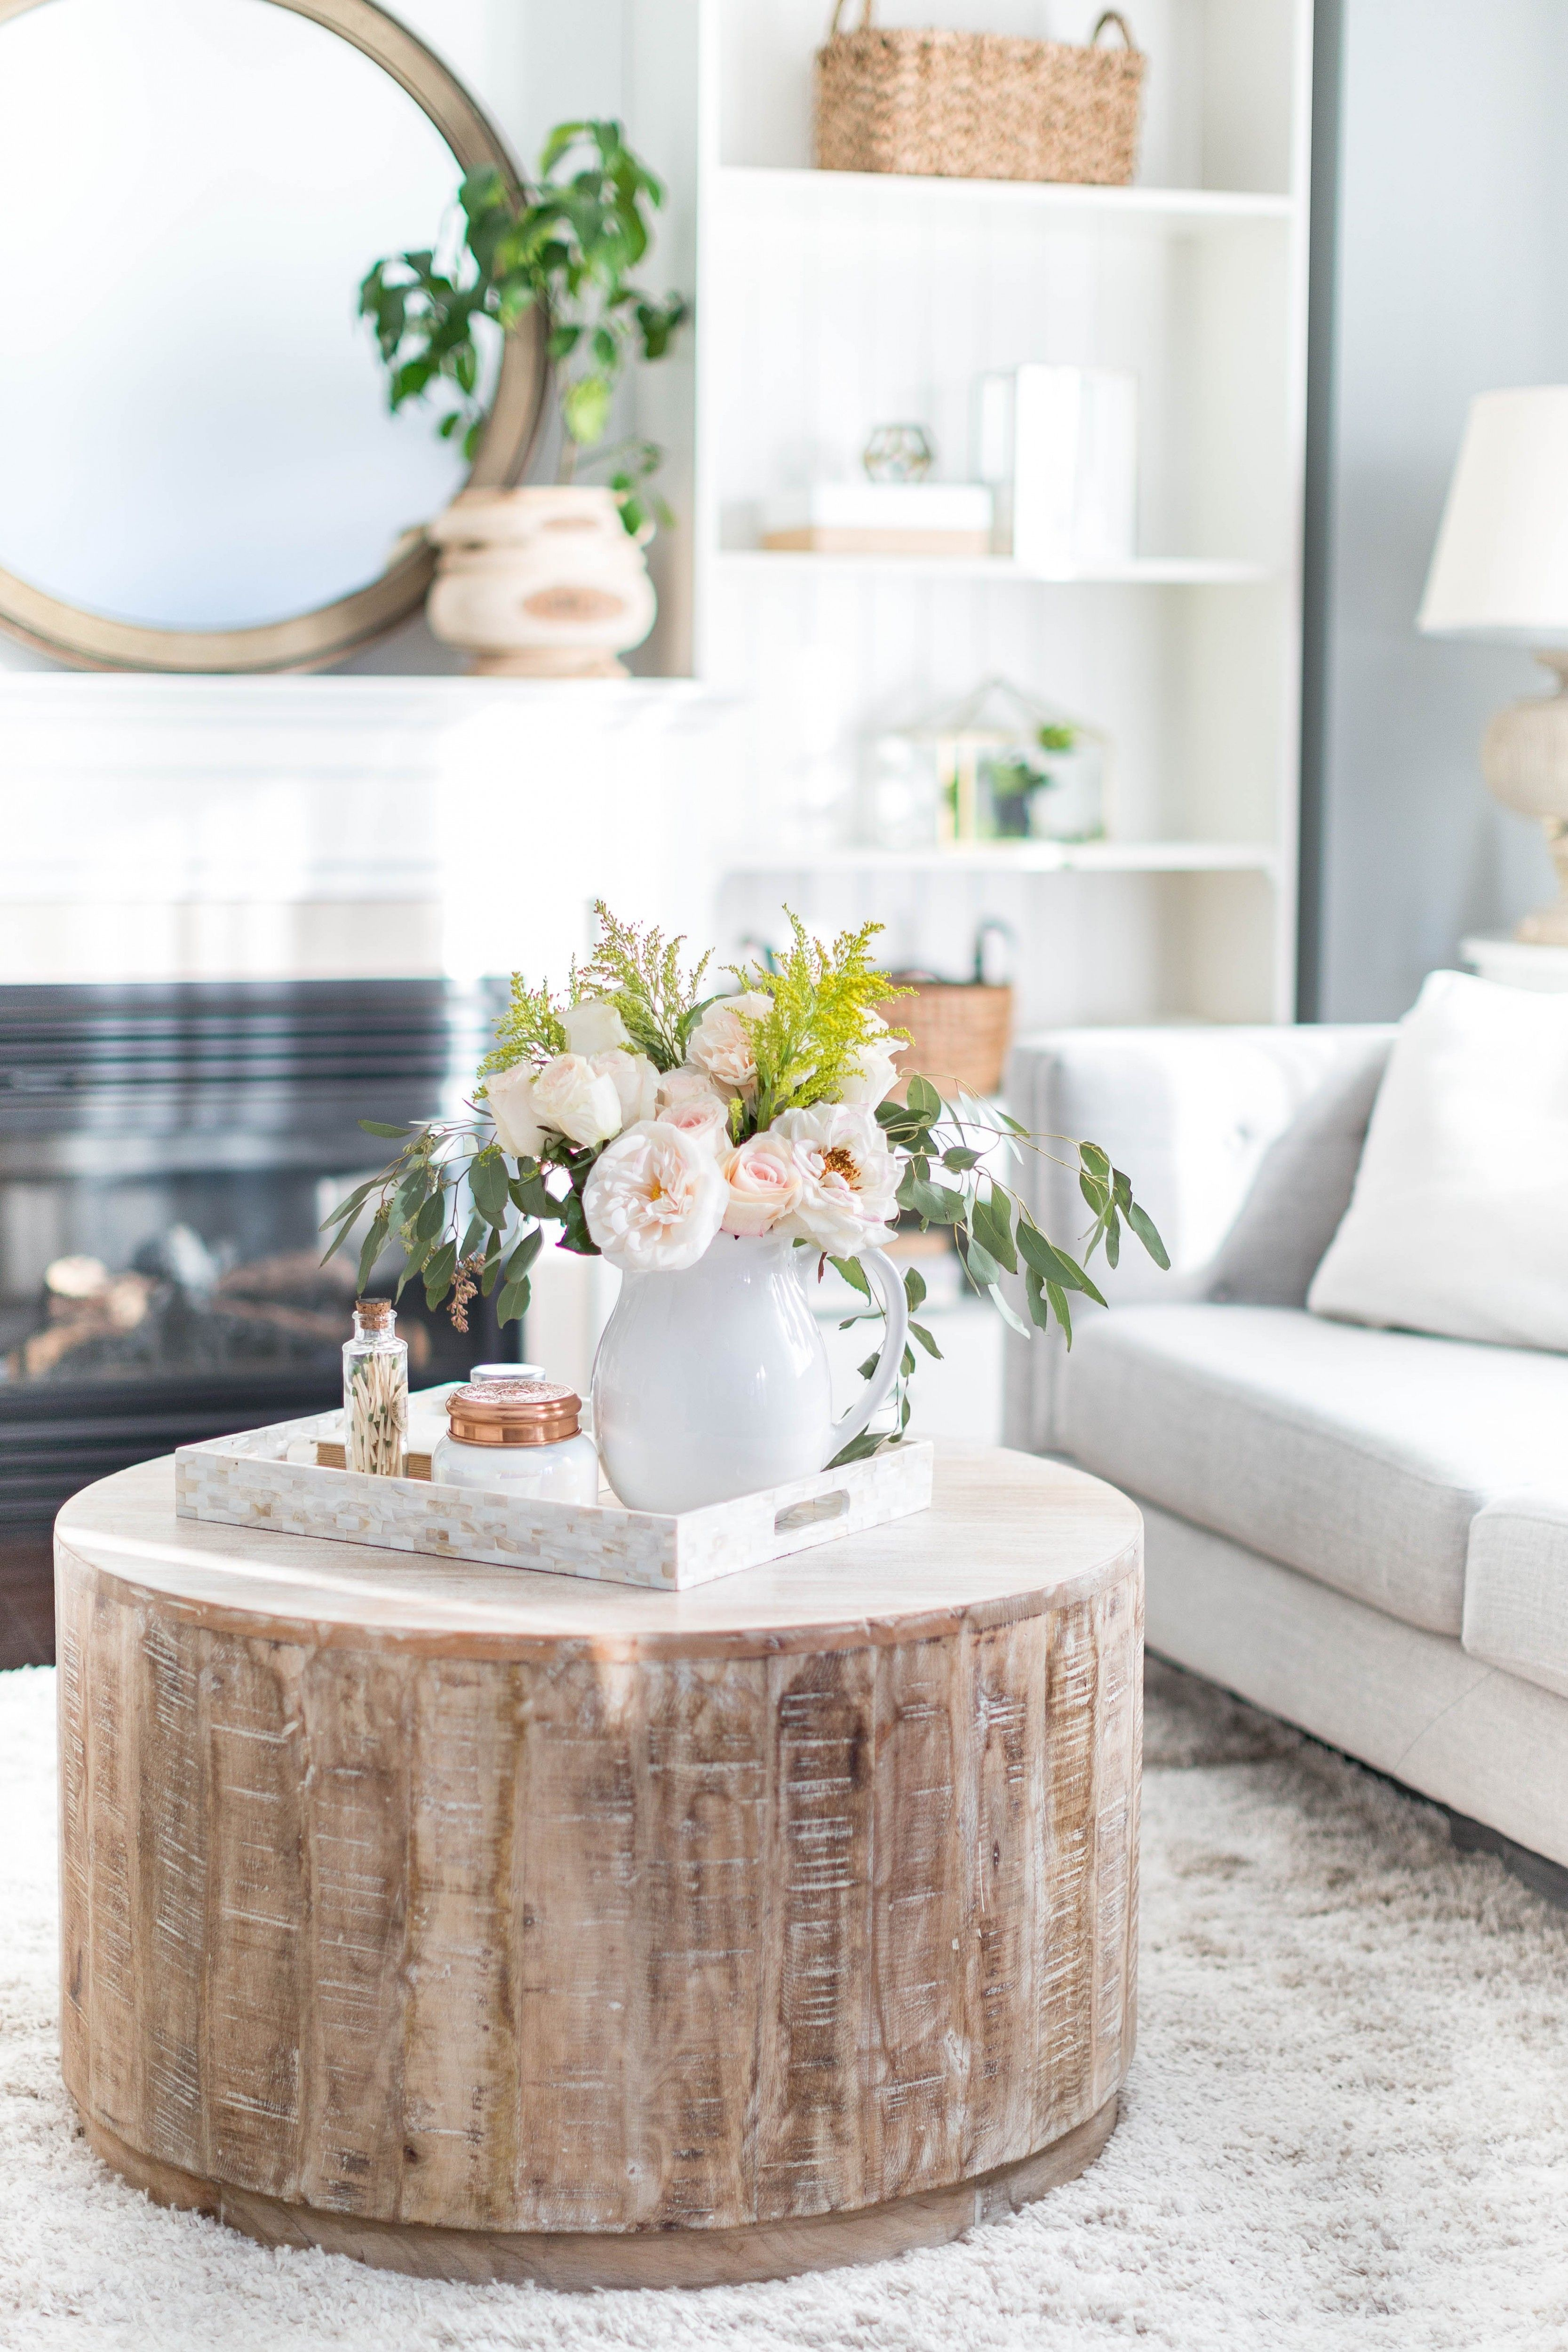 7 Awesome Modern Coffee Table Ideas Boost Your Energy Decor Unique Coffee Table Home Decor